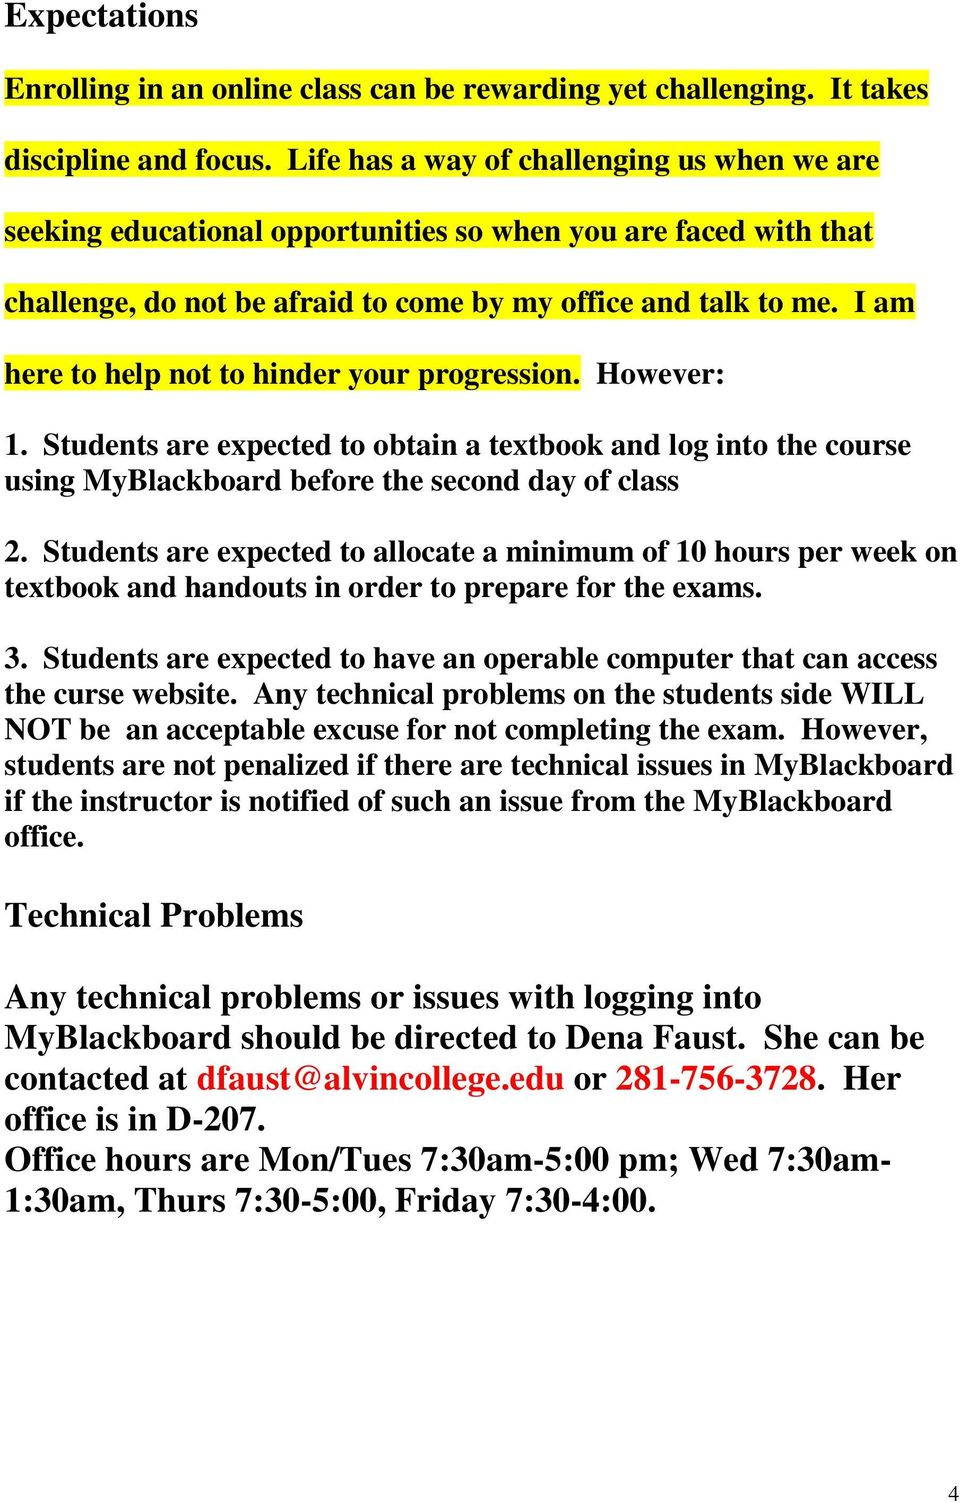 I am here to help not to hinder your progression. However: 1. Students are expected to obtain a textbook and log into the course using MyBlackboard before the second day of class 2.